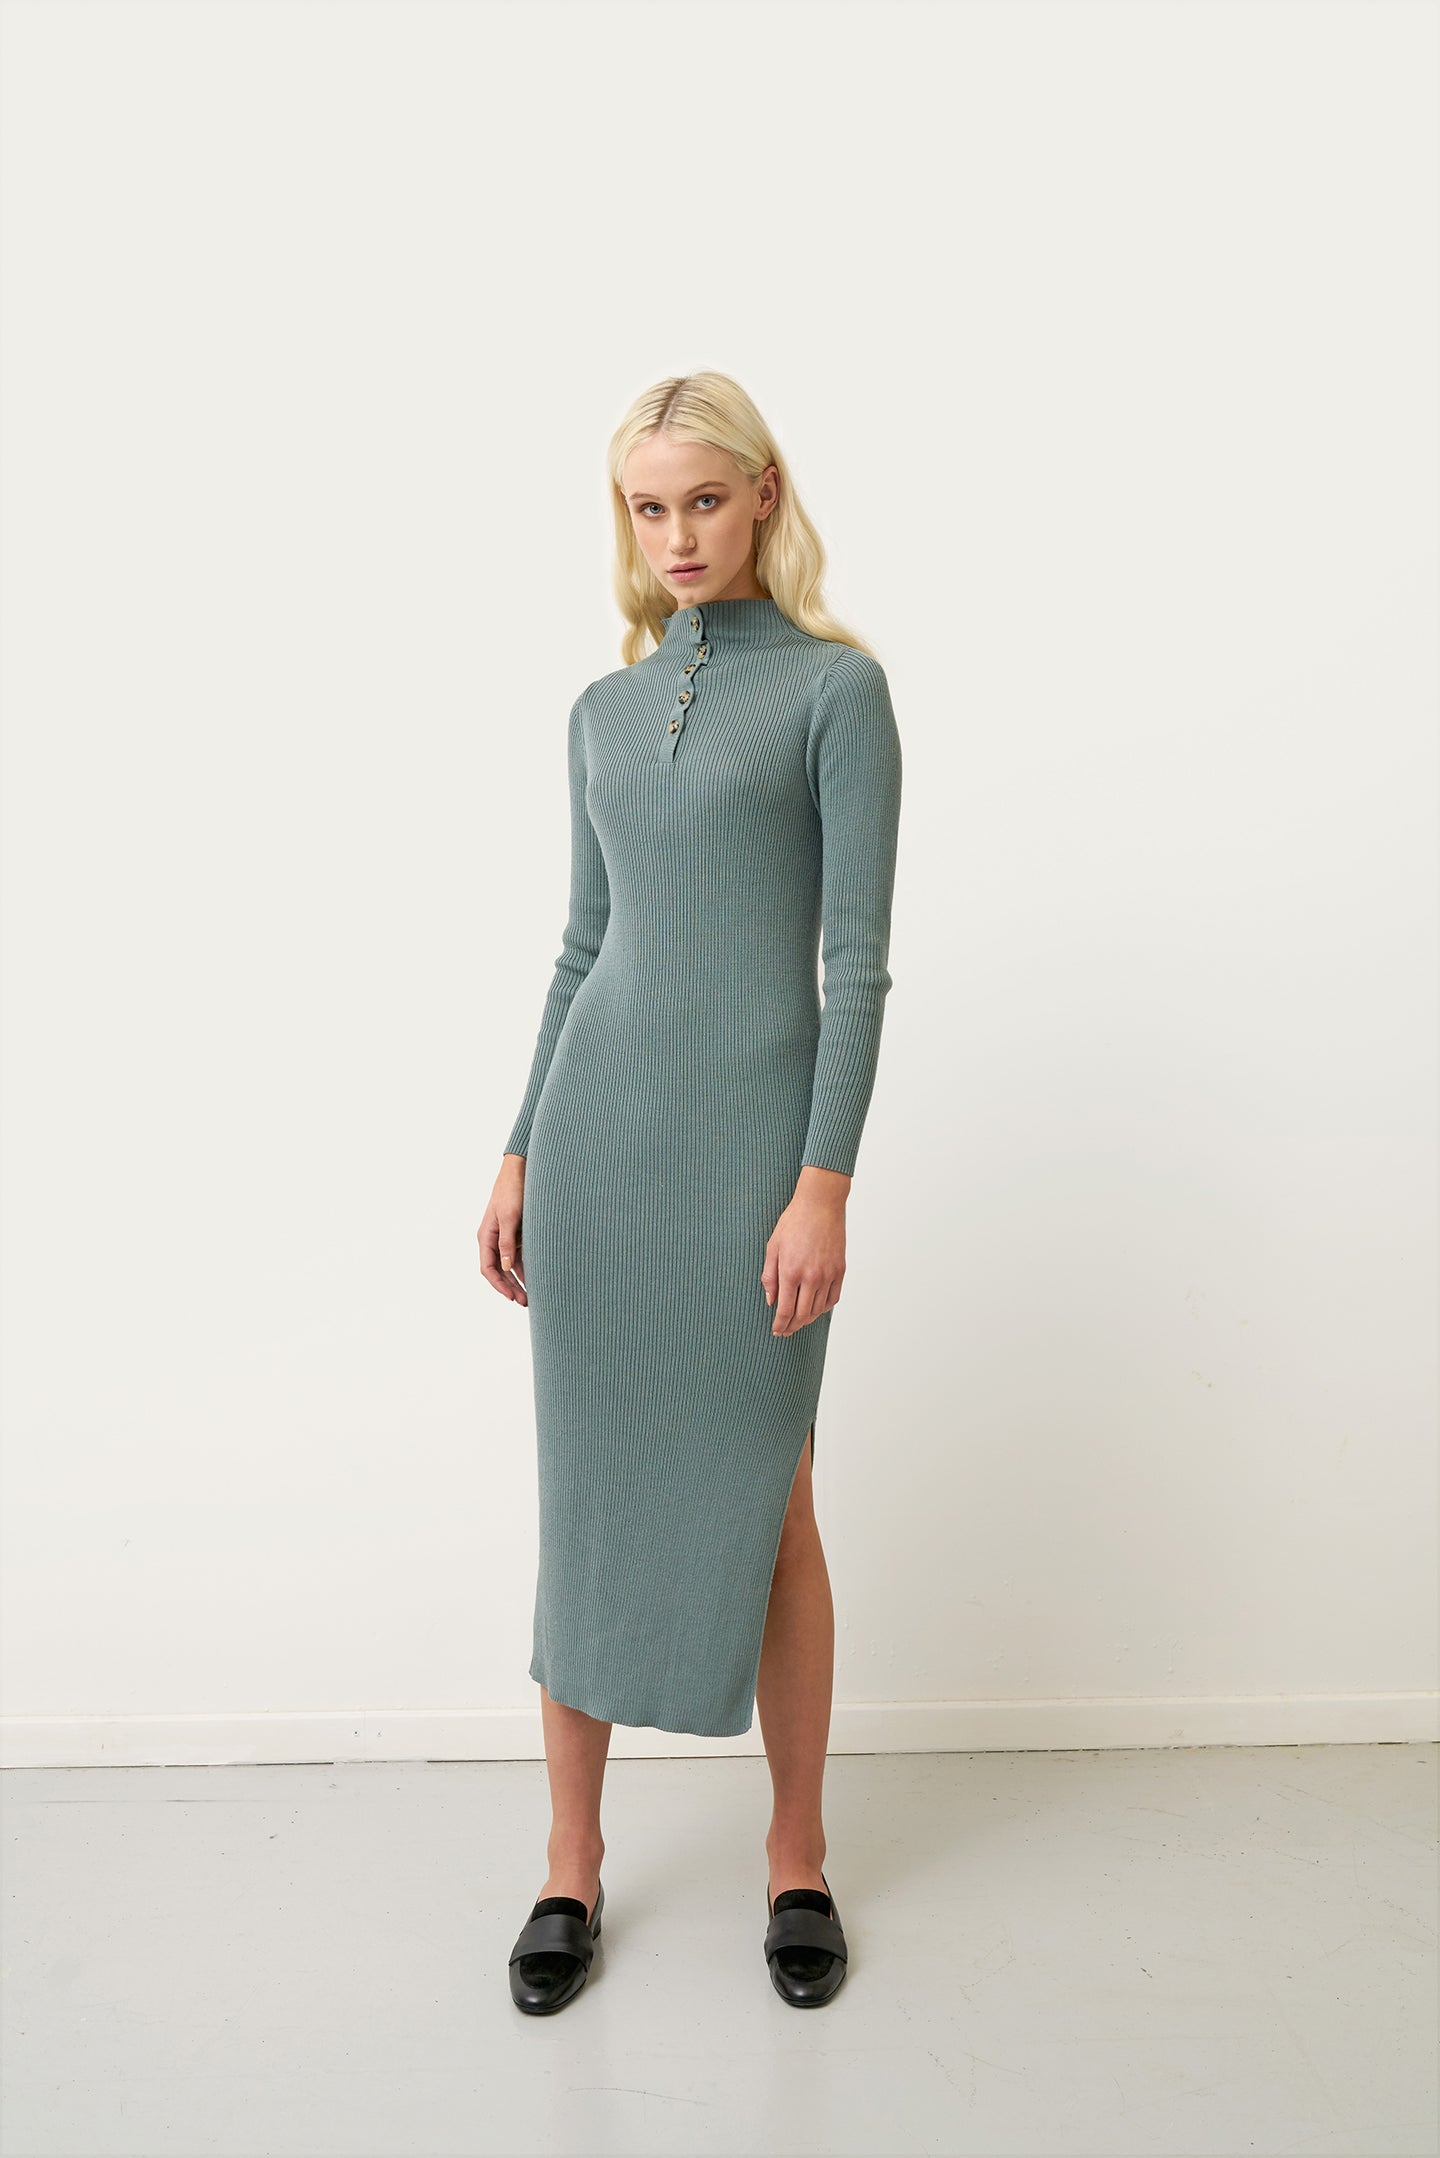 Eva — Rib Knit Dress